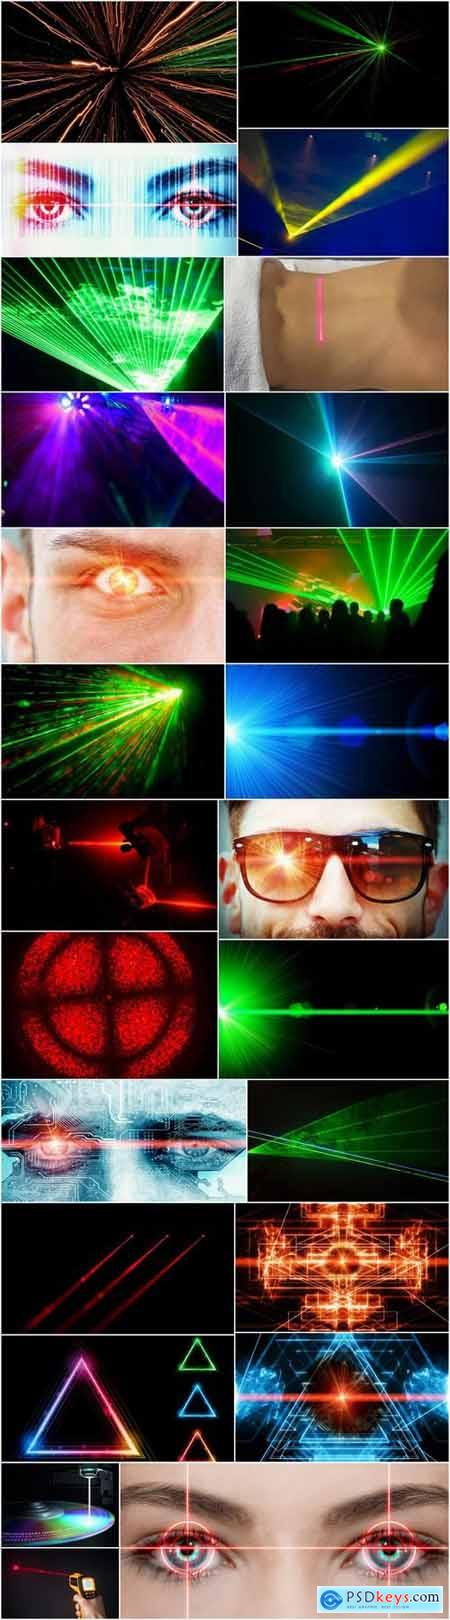 Laser beam light effect illumination 25 HQ Jpeg